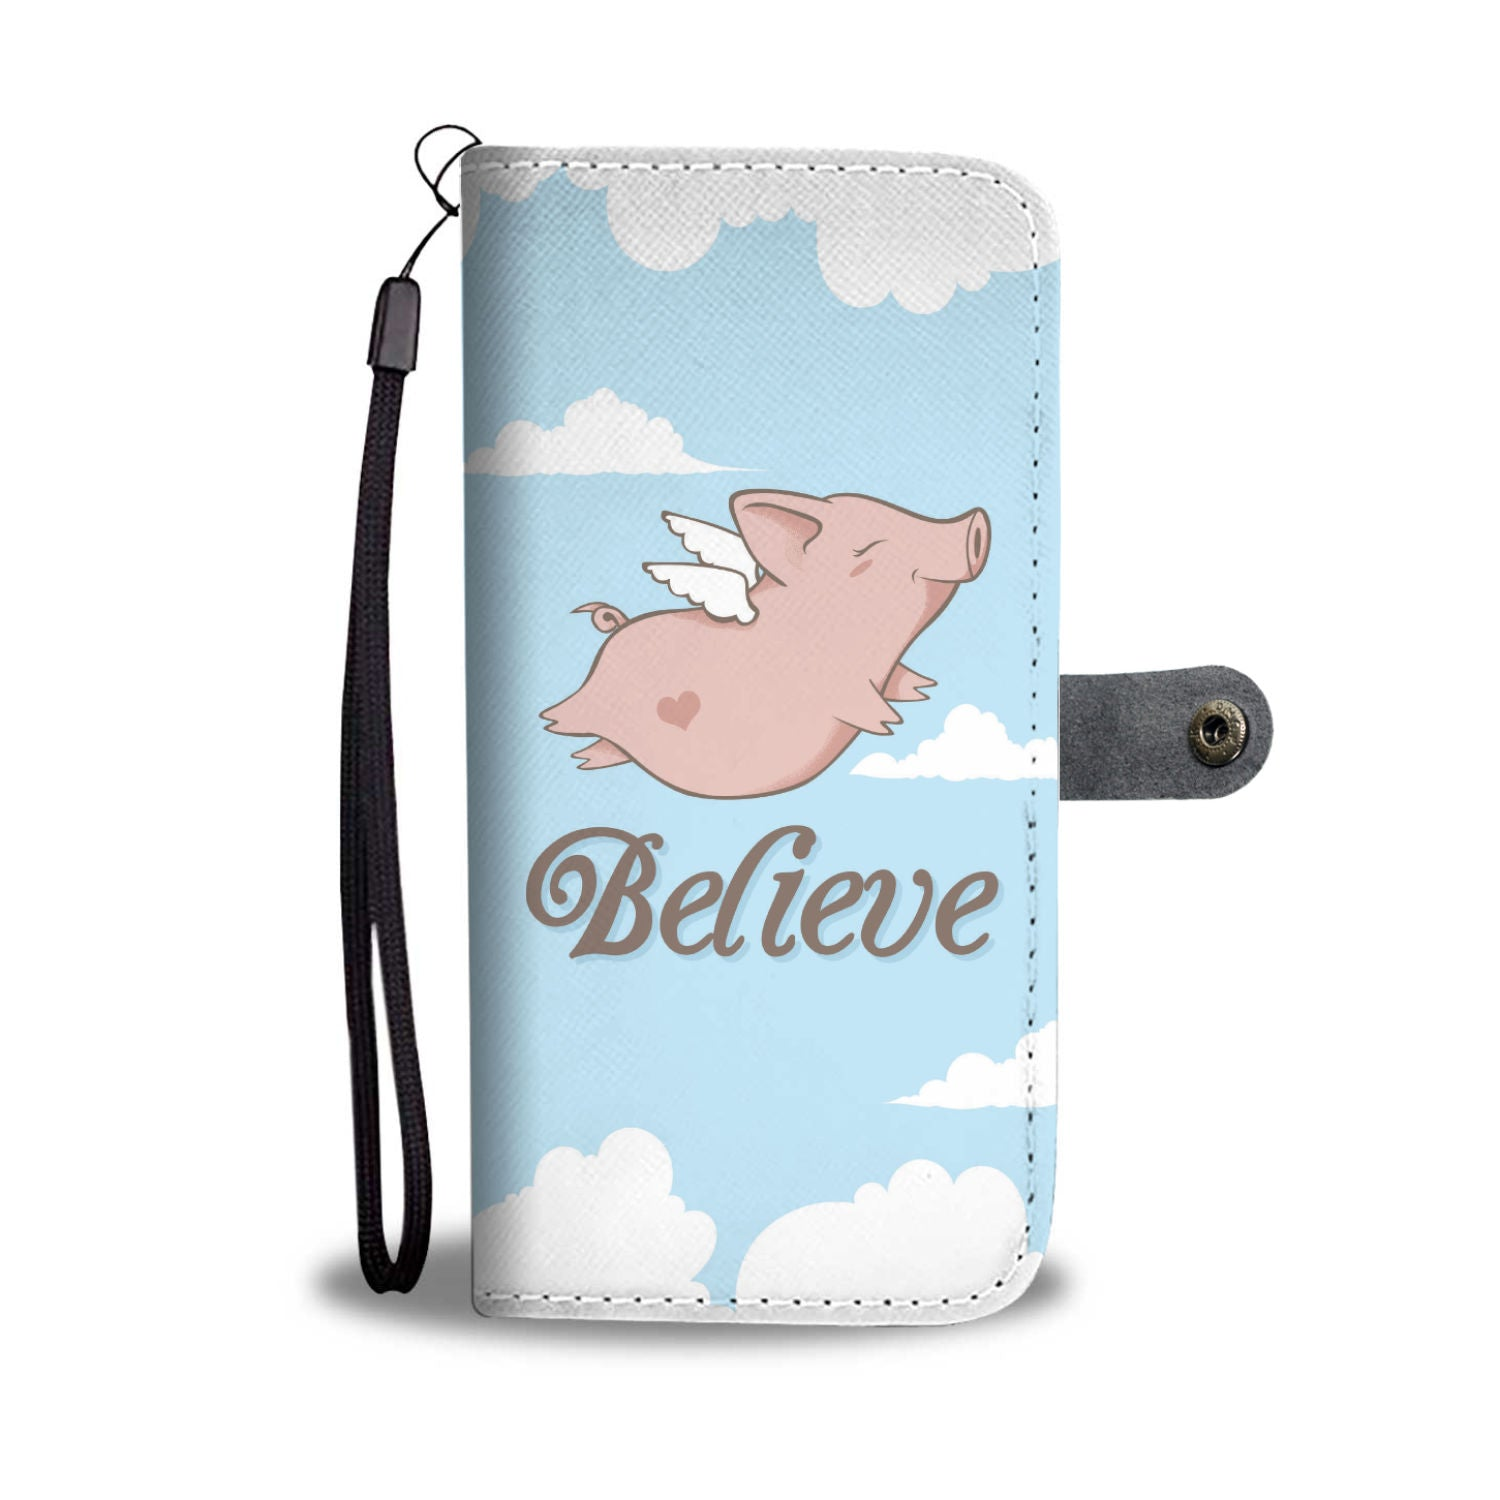 Believe Phone Wallet Case